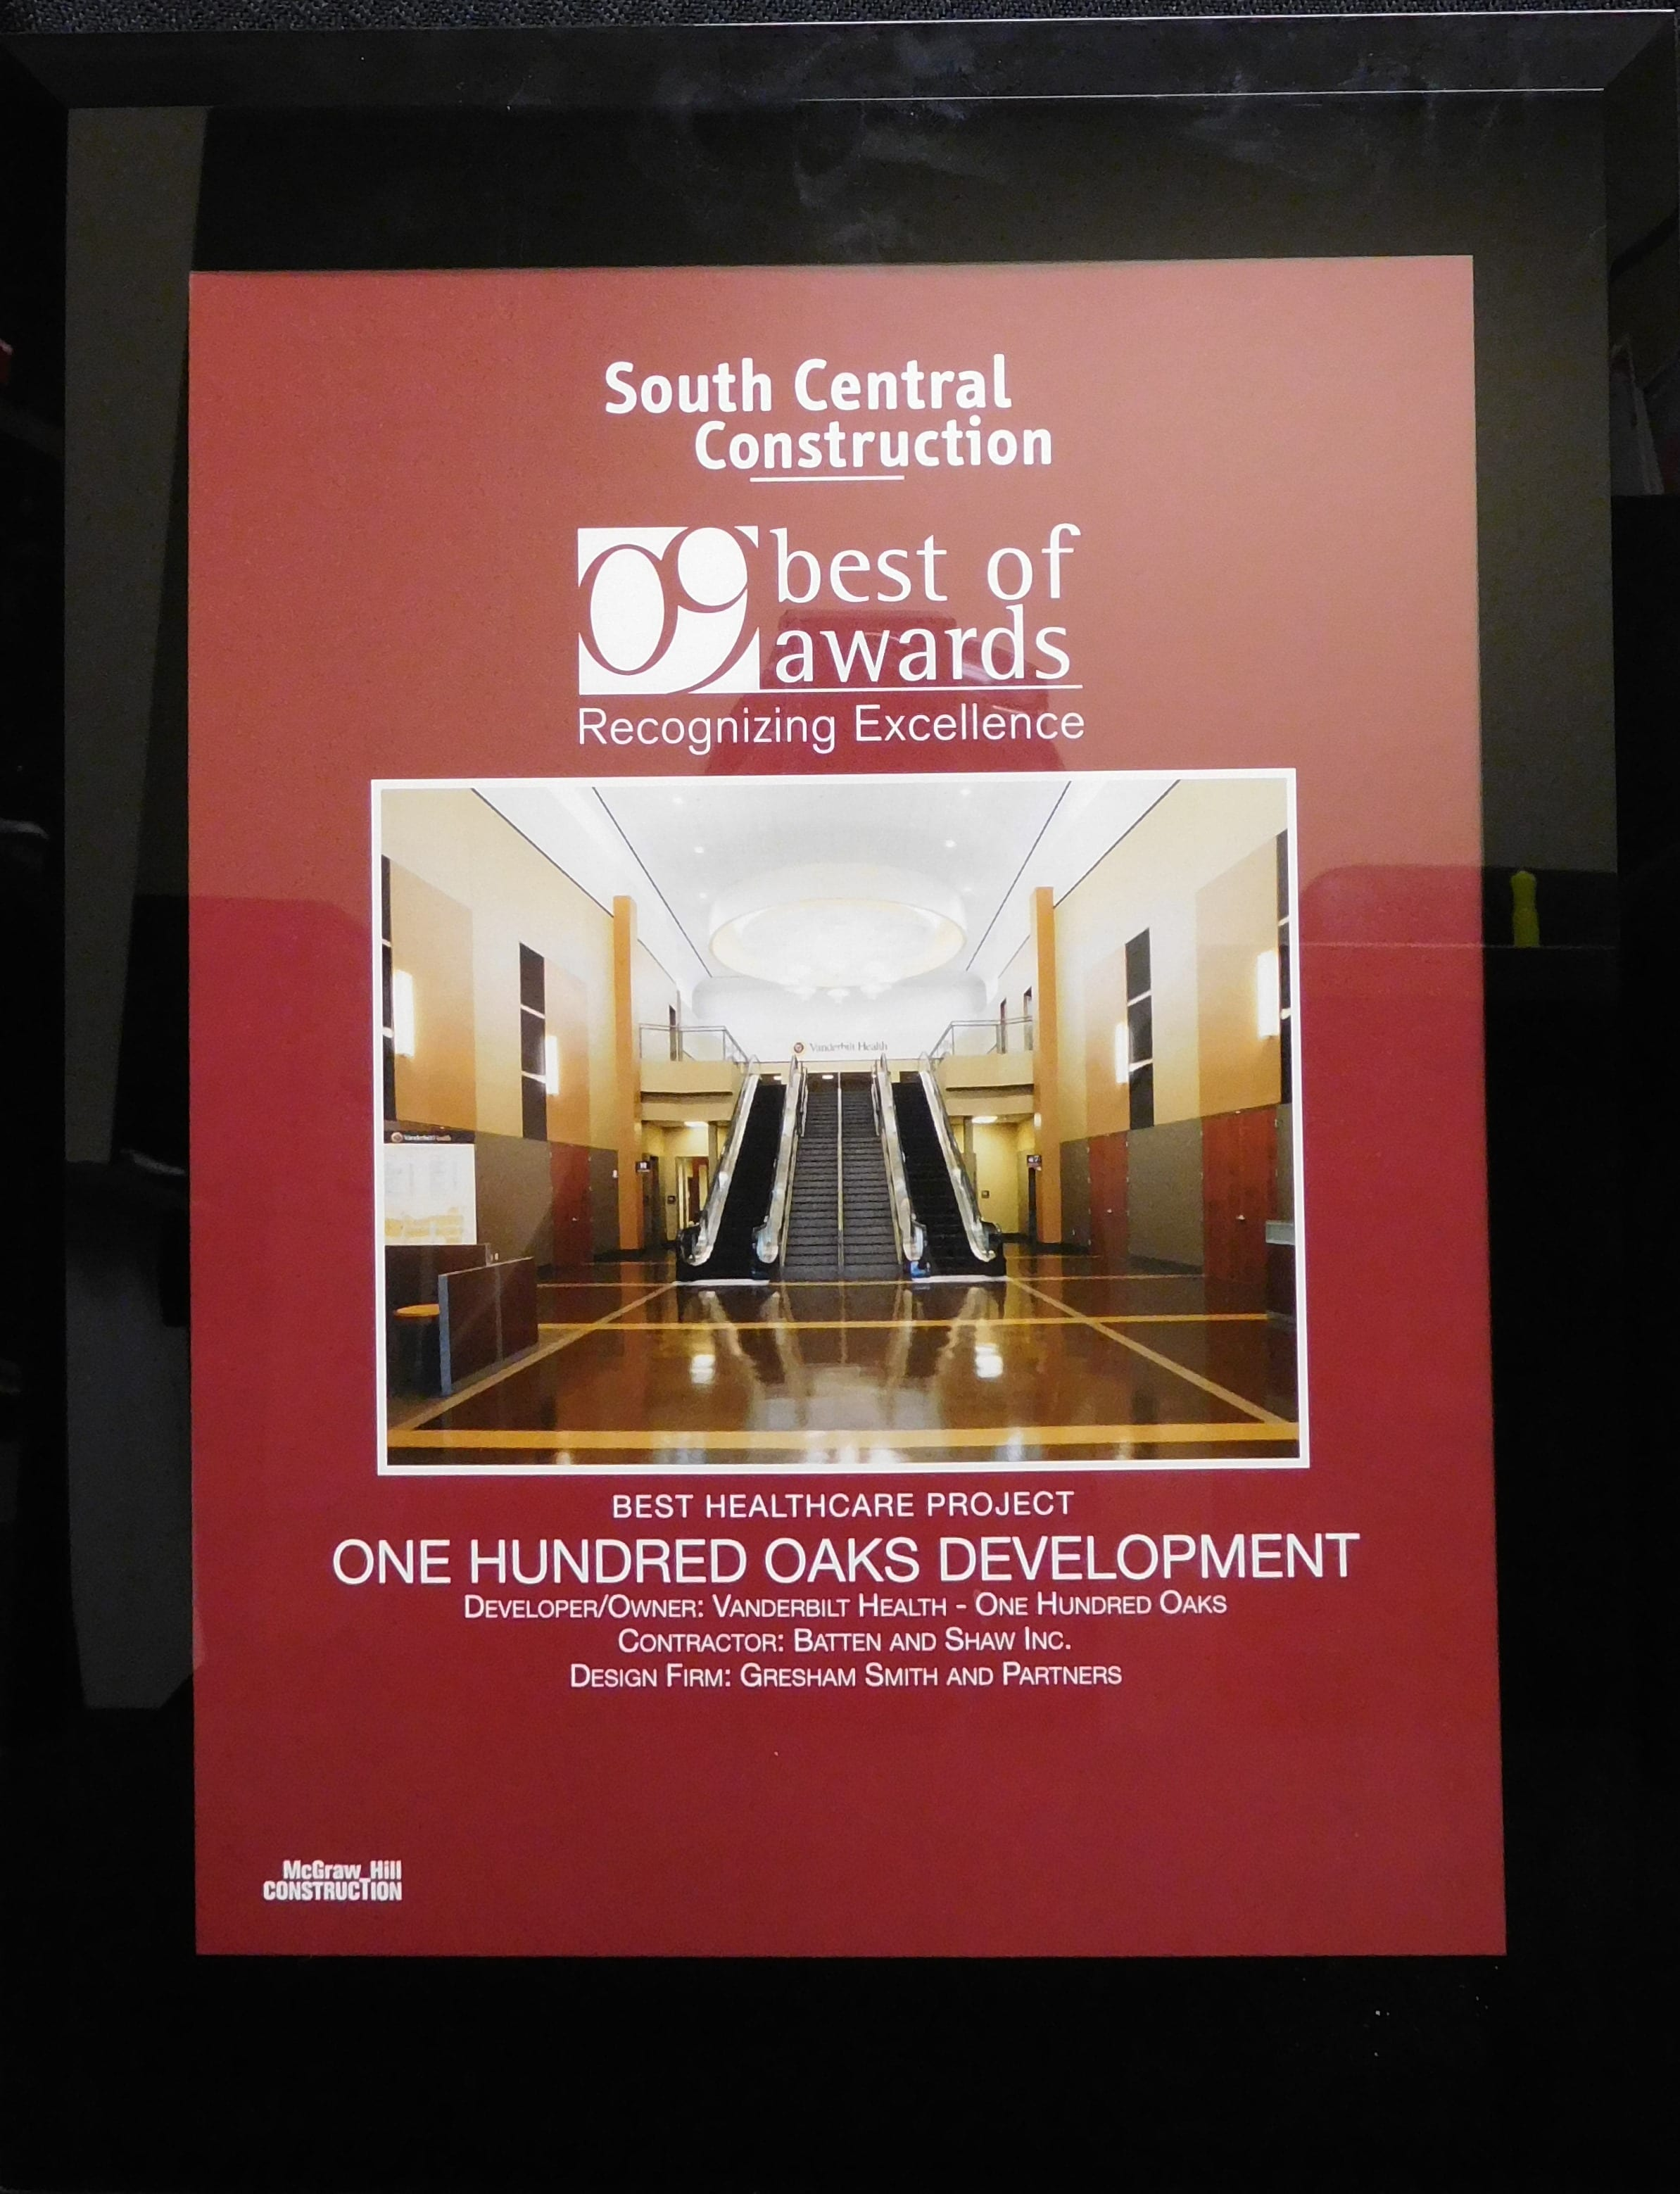 2009 South Central Construction Best Healthcare Project One Hundred Oaks Development